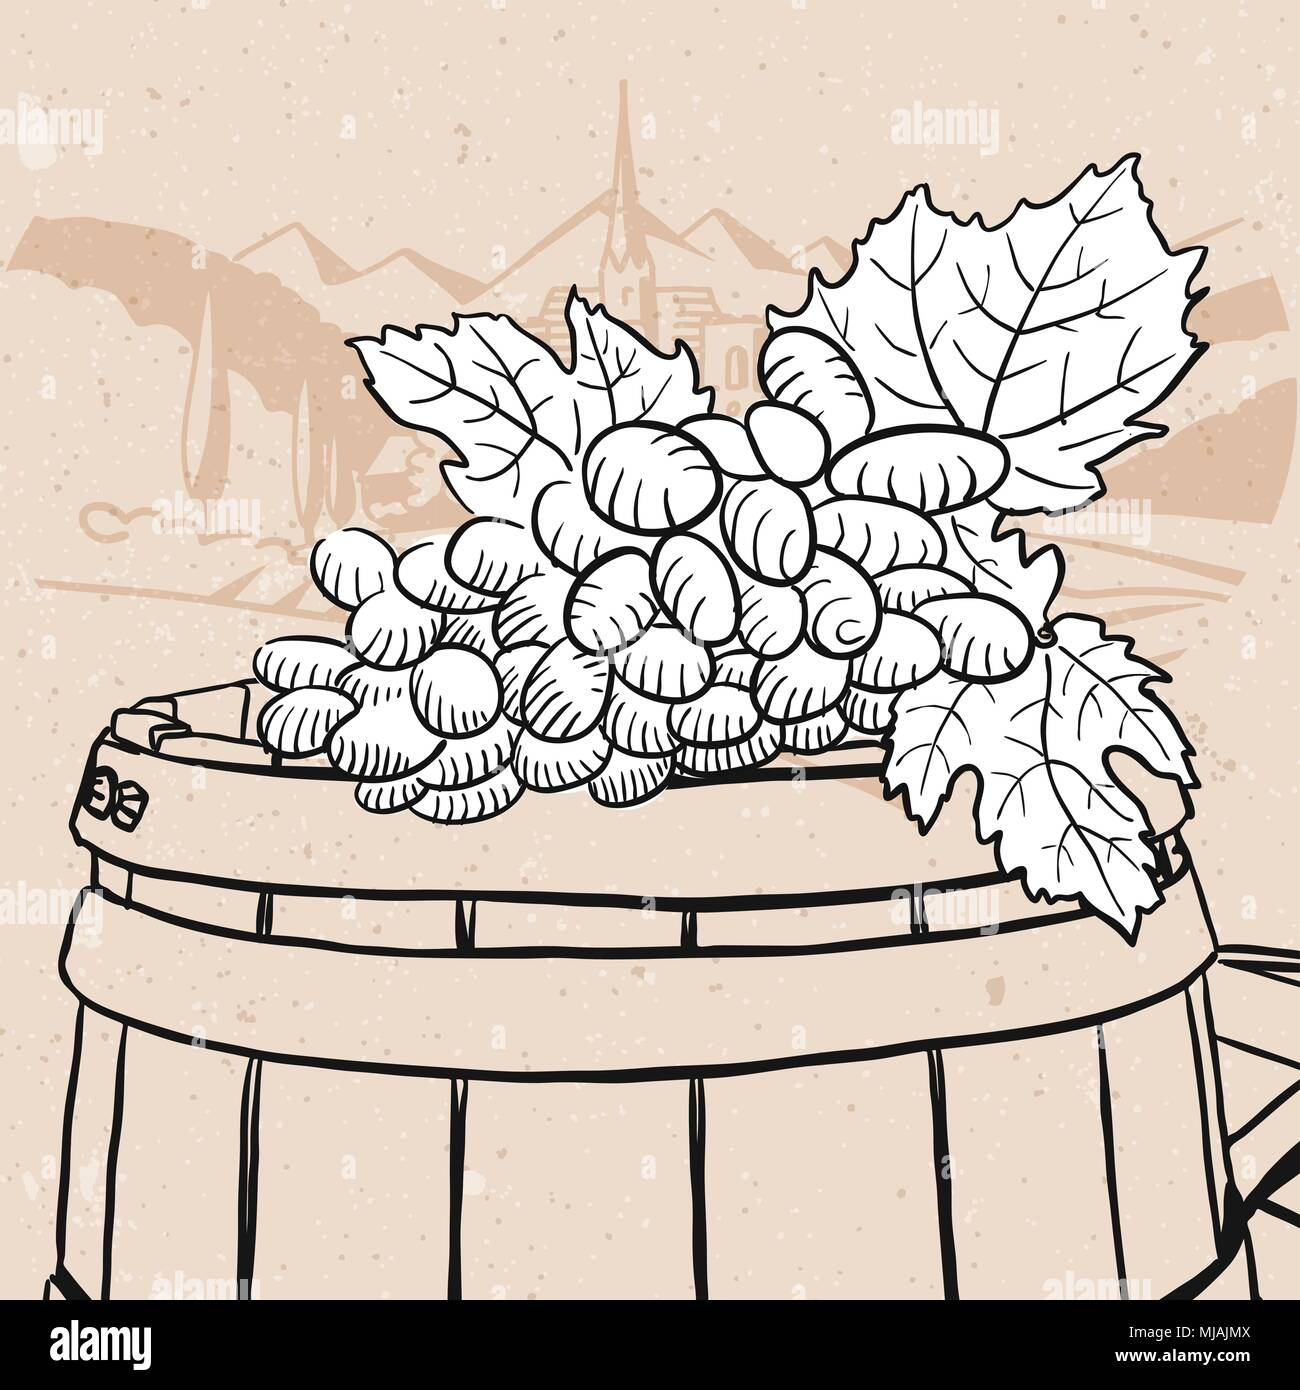 Grapes on sketched wooden barrel with wine, Hand drawn Vector Artwork Stock Vector